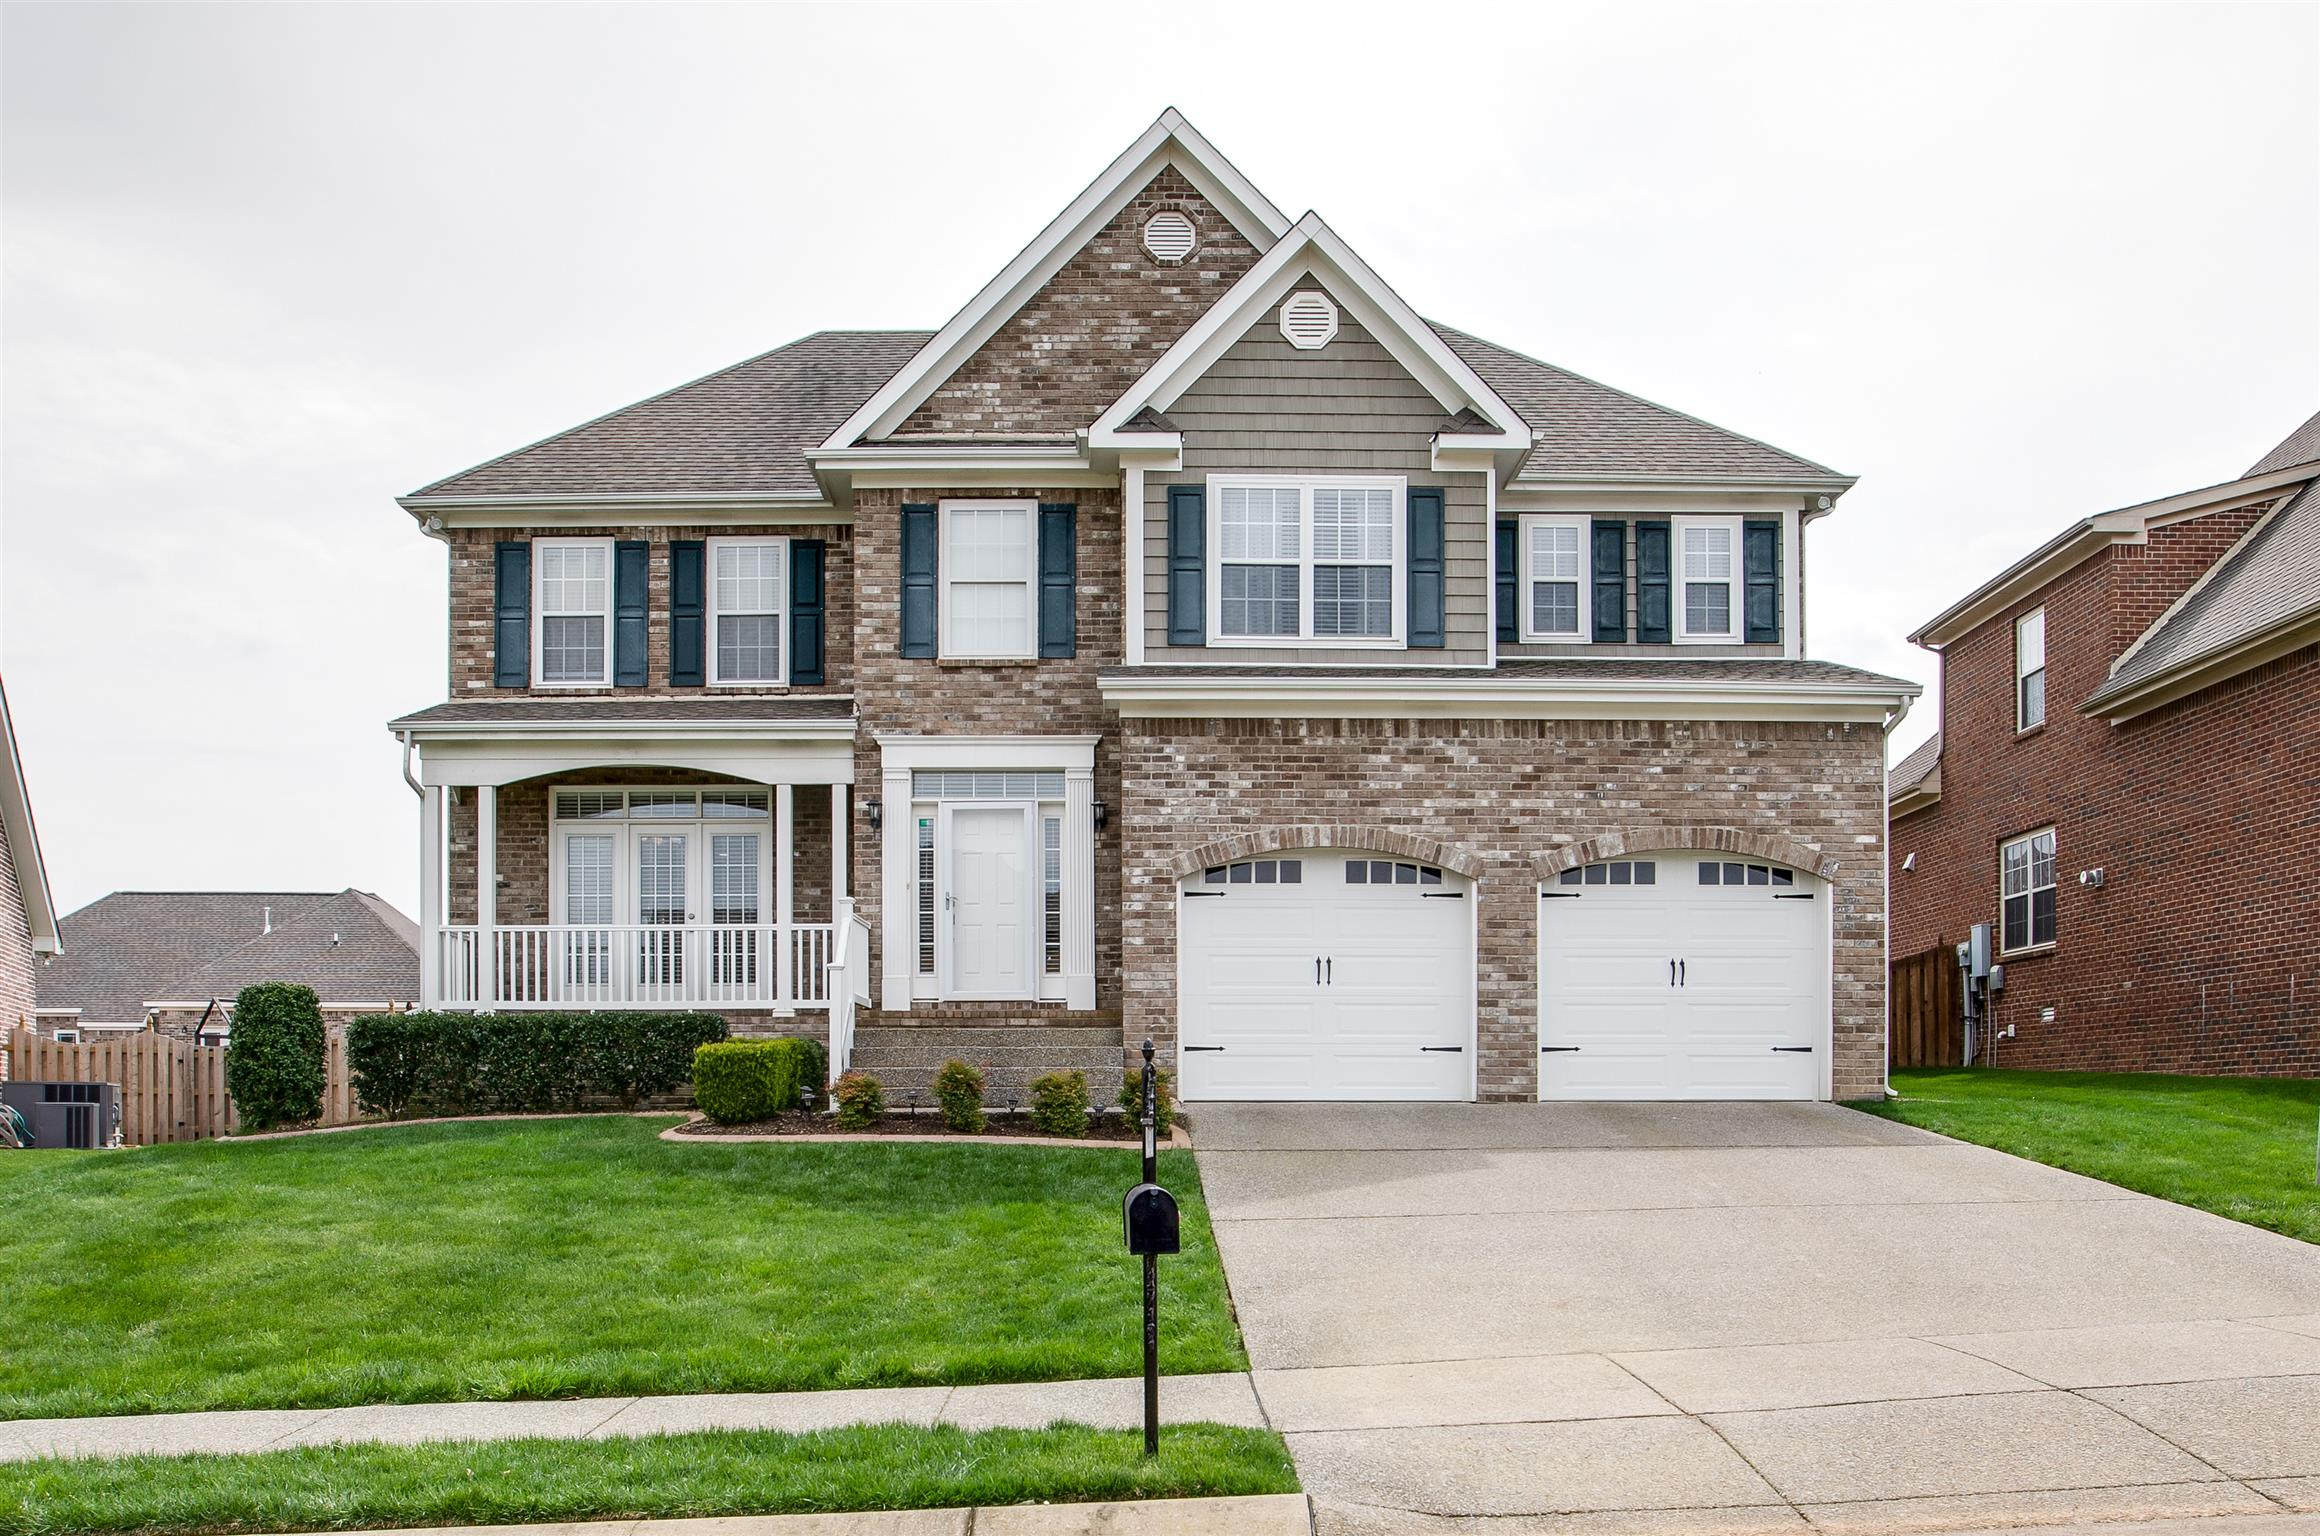 5004 Dubose Ct, Spring Hill, Tennessee